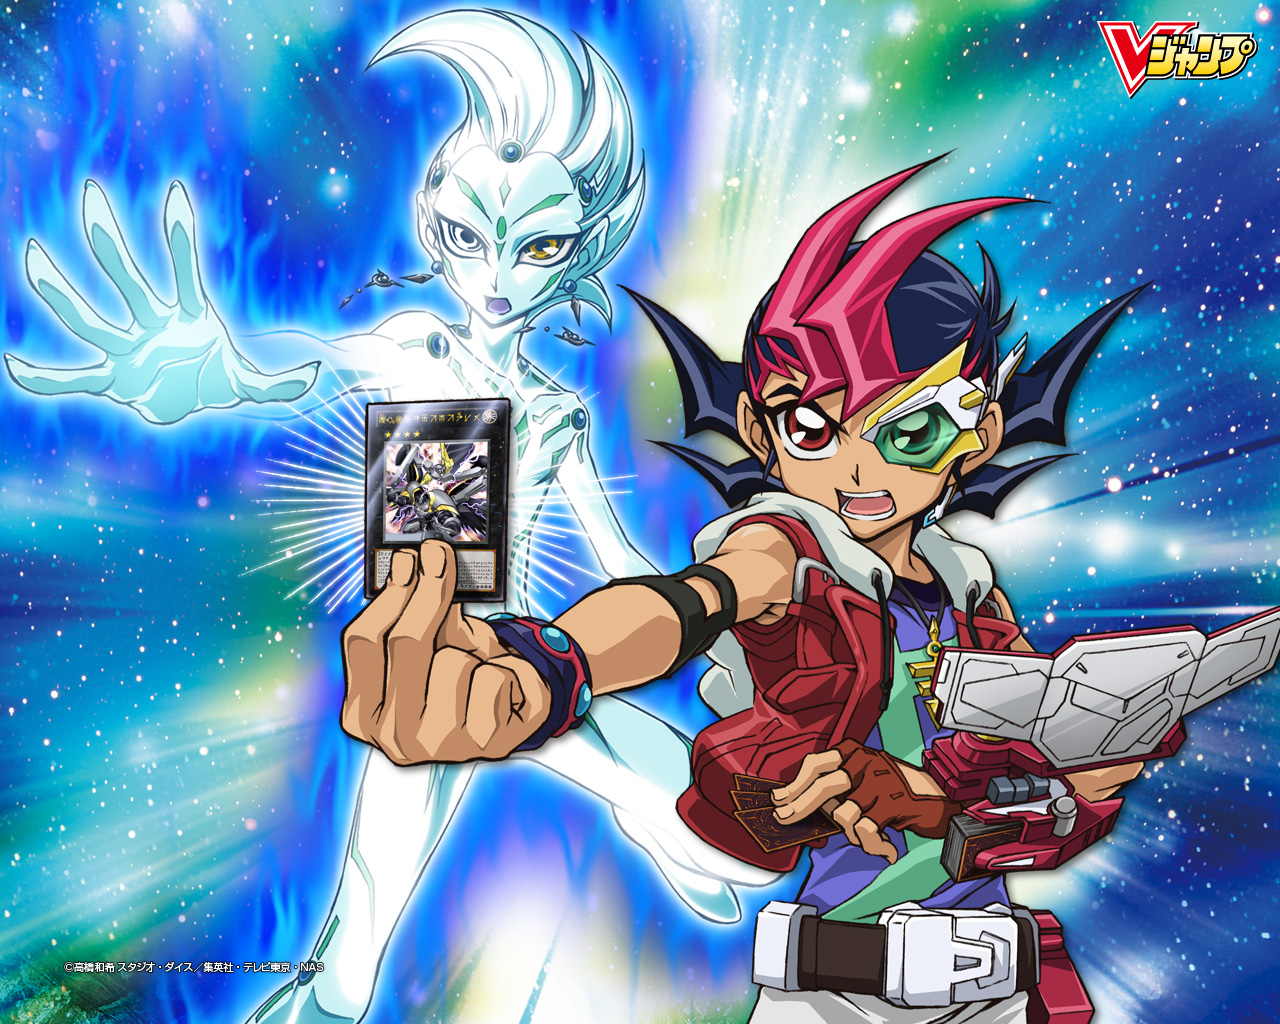 Yu-Gi-Oh! Zexal Backgrounds, Compatible - PC, Mobile, Gadgets| 1280x1024 px